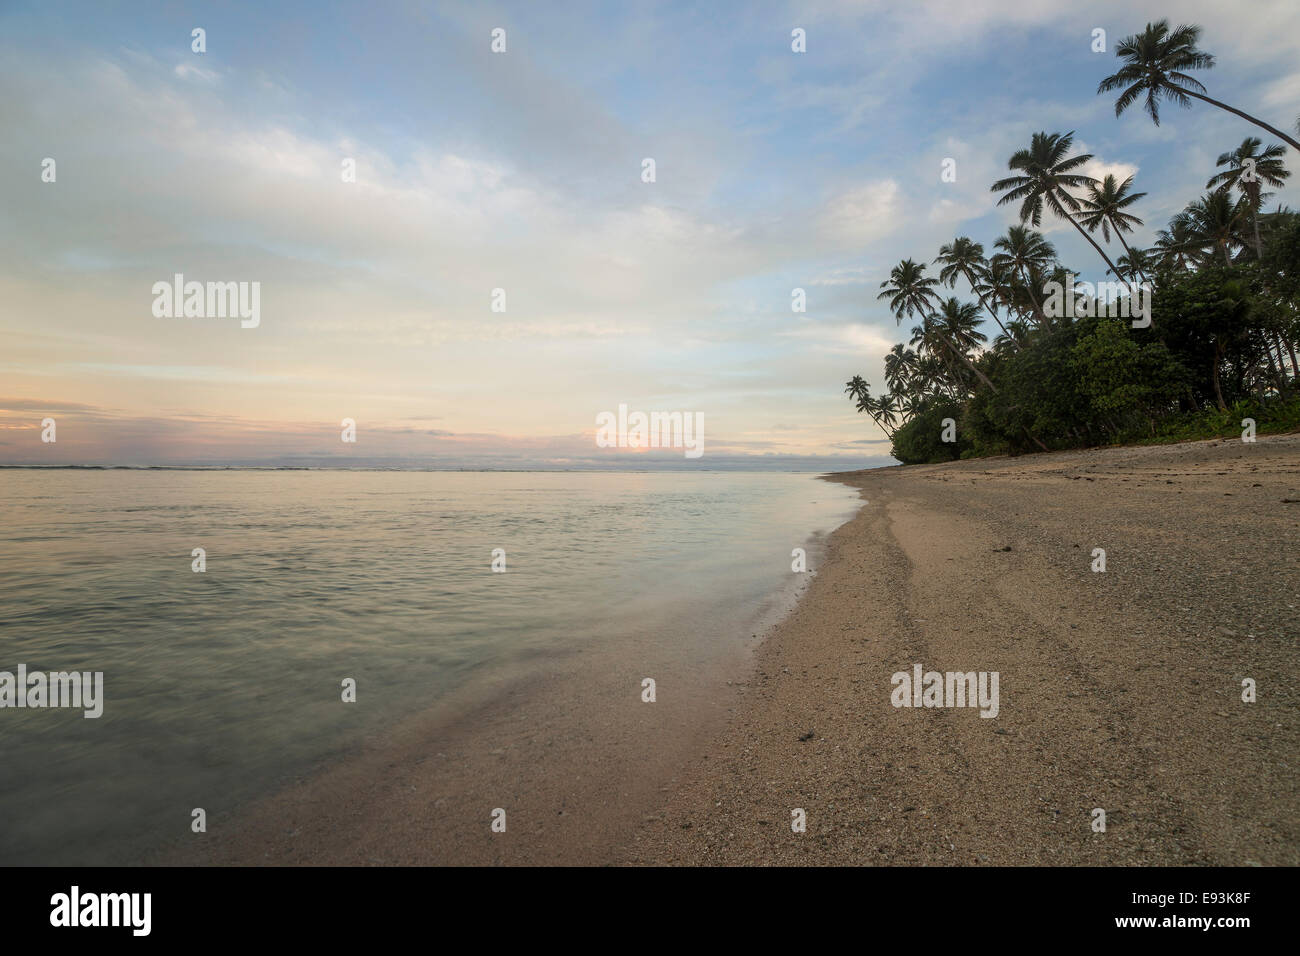 Sunset at Lavena beach, Taveuni, Fiji, Oceania - Stock Image